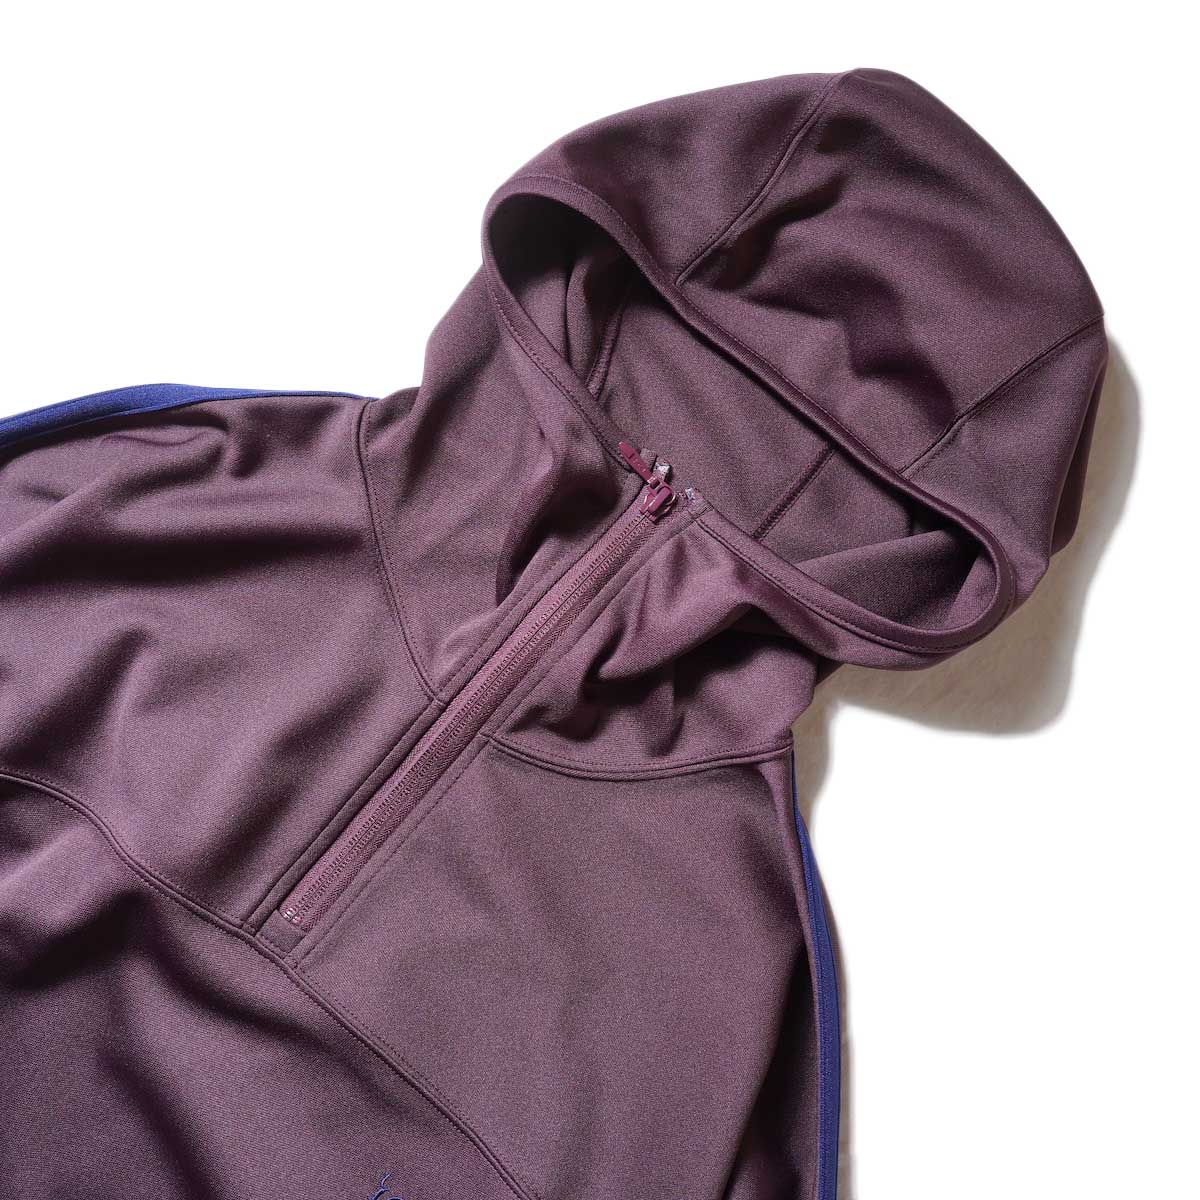 South2 West8 / Trainer Hoody - Poly Smooth (Burgundy)zip締めたver2